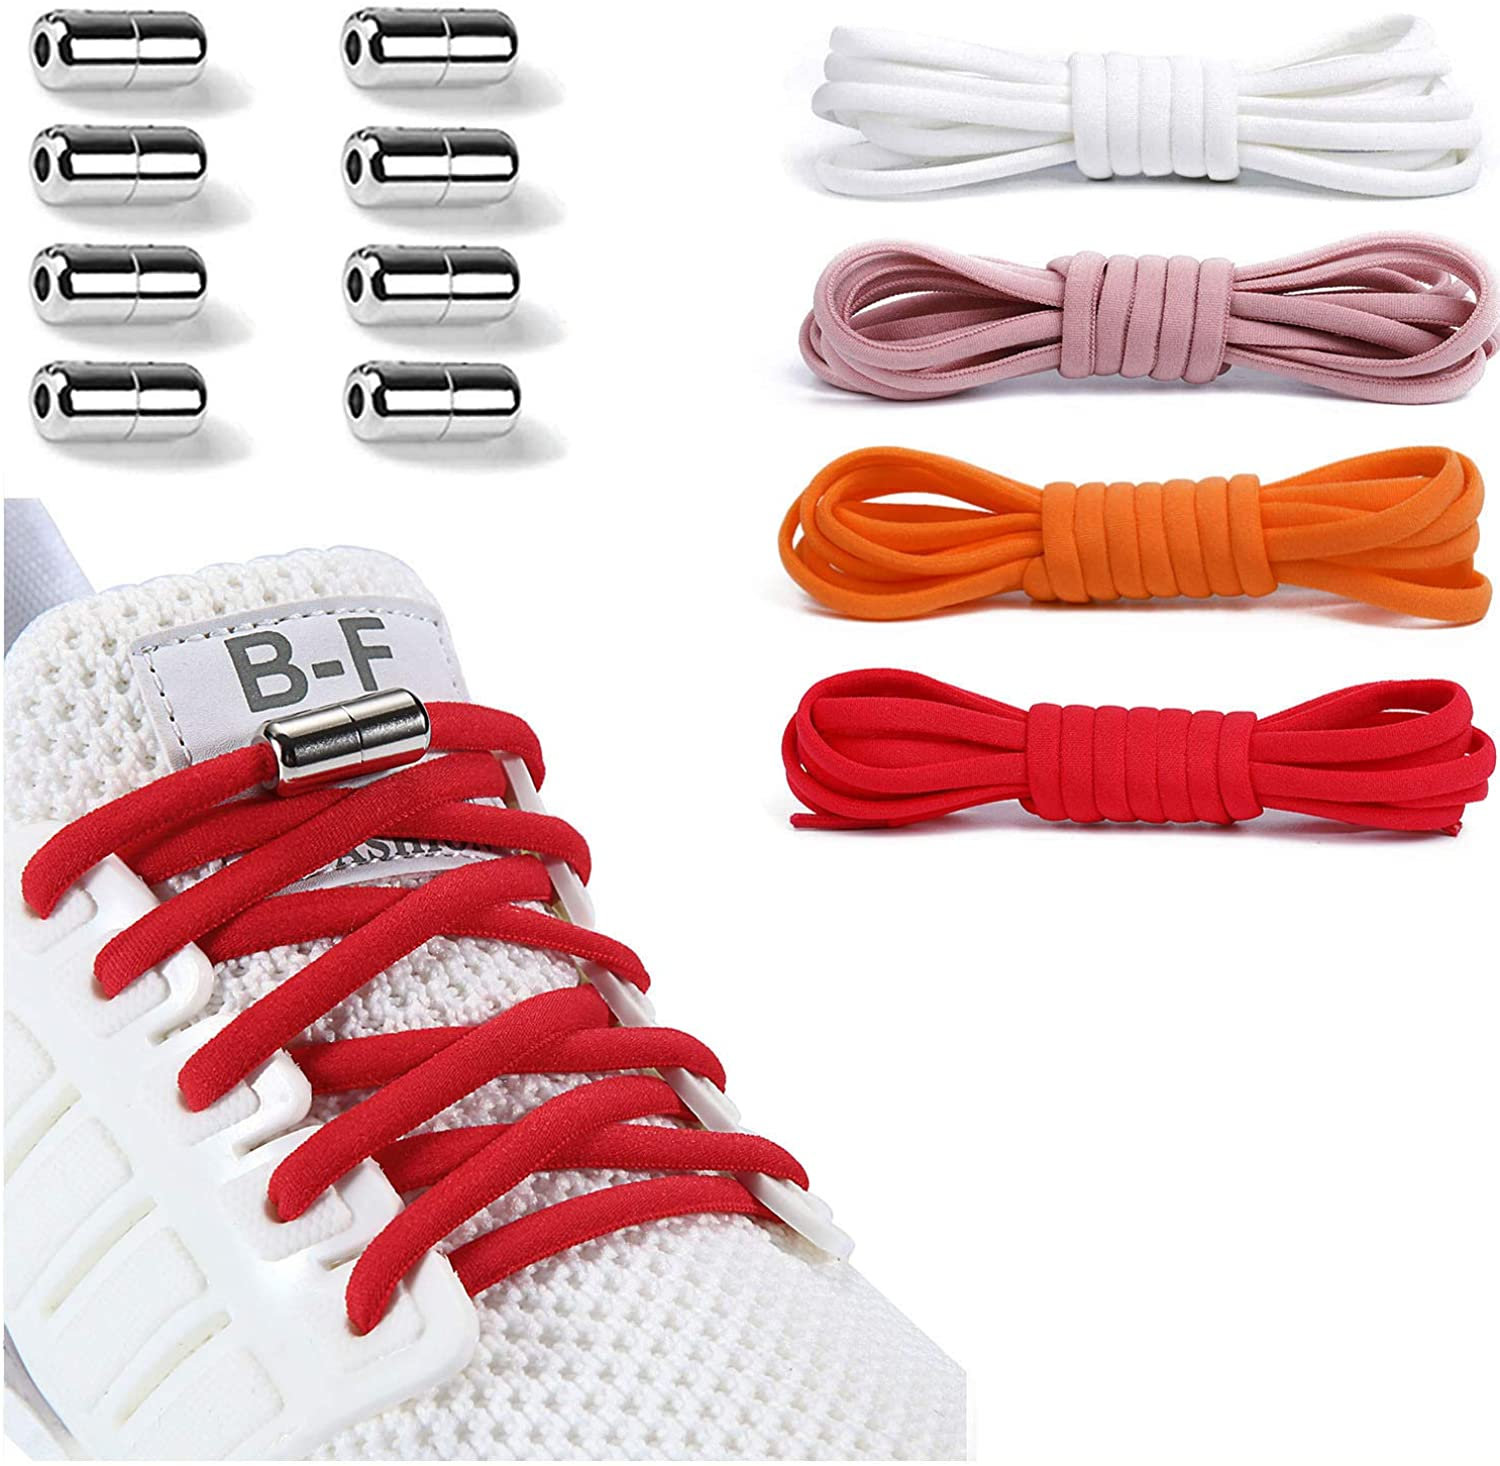 Booyckiy [4 Pairs] No Tie Elastic Shoe laces - Tieless Shoelaces for Kids, Adults and Elderly, One Size Fits All